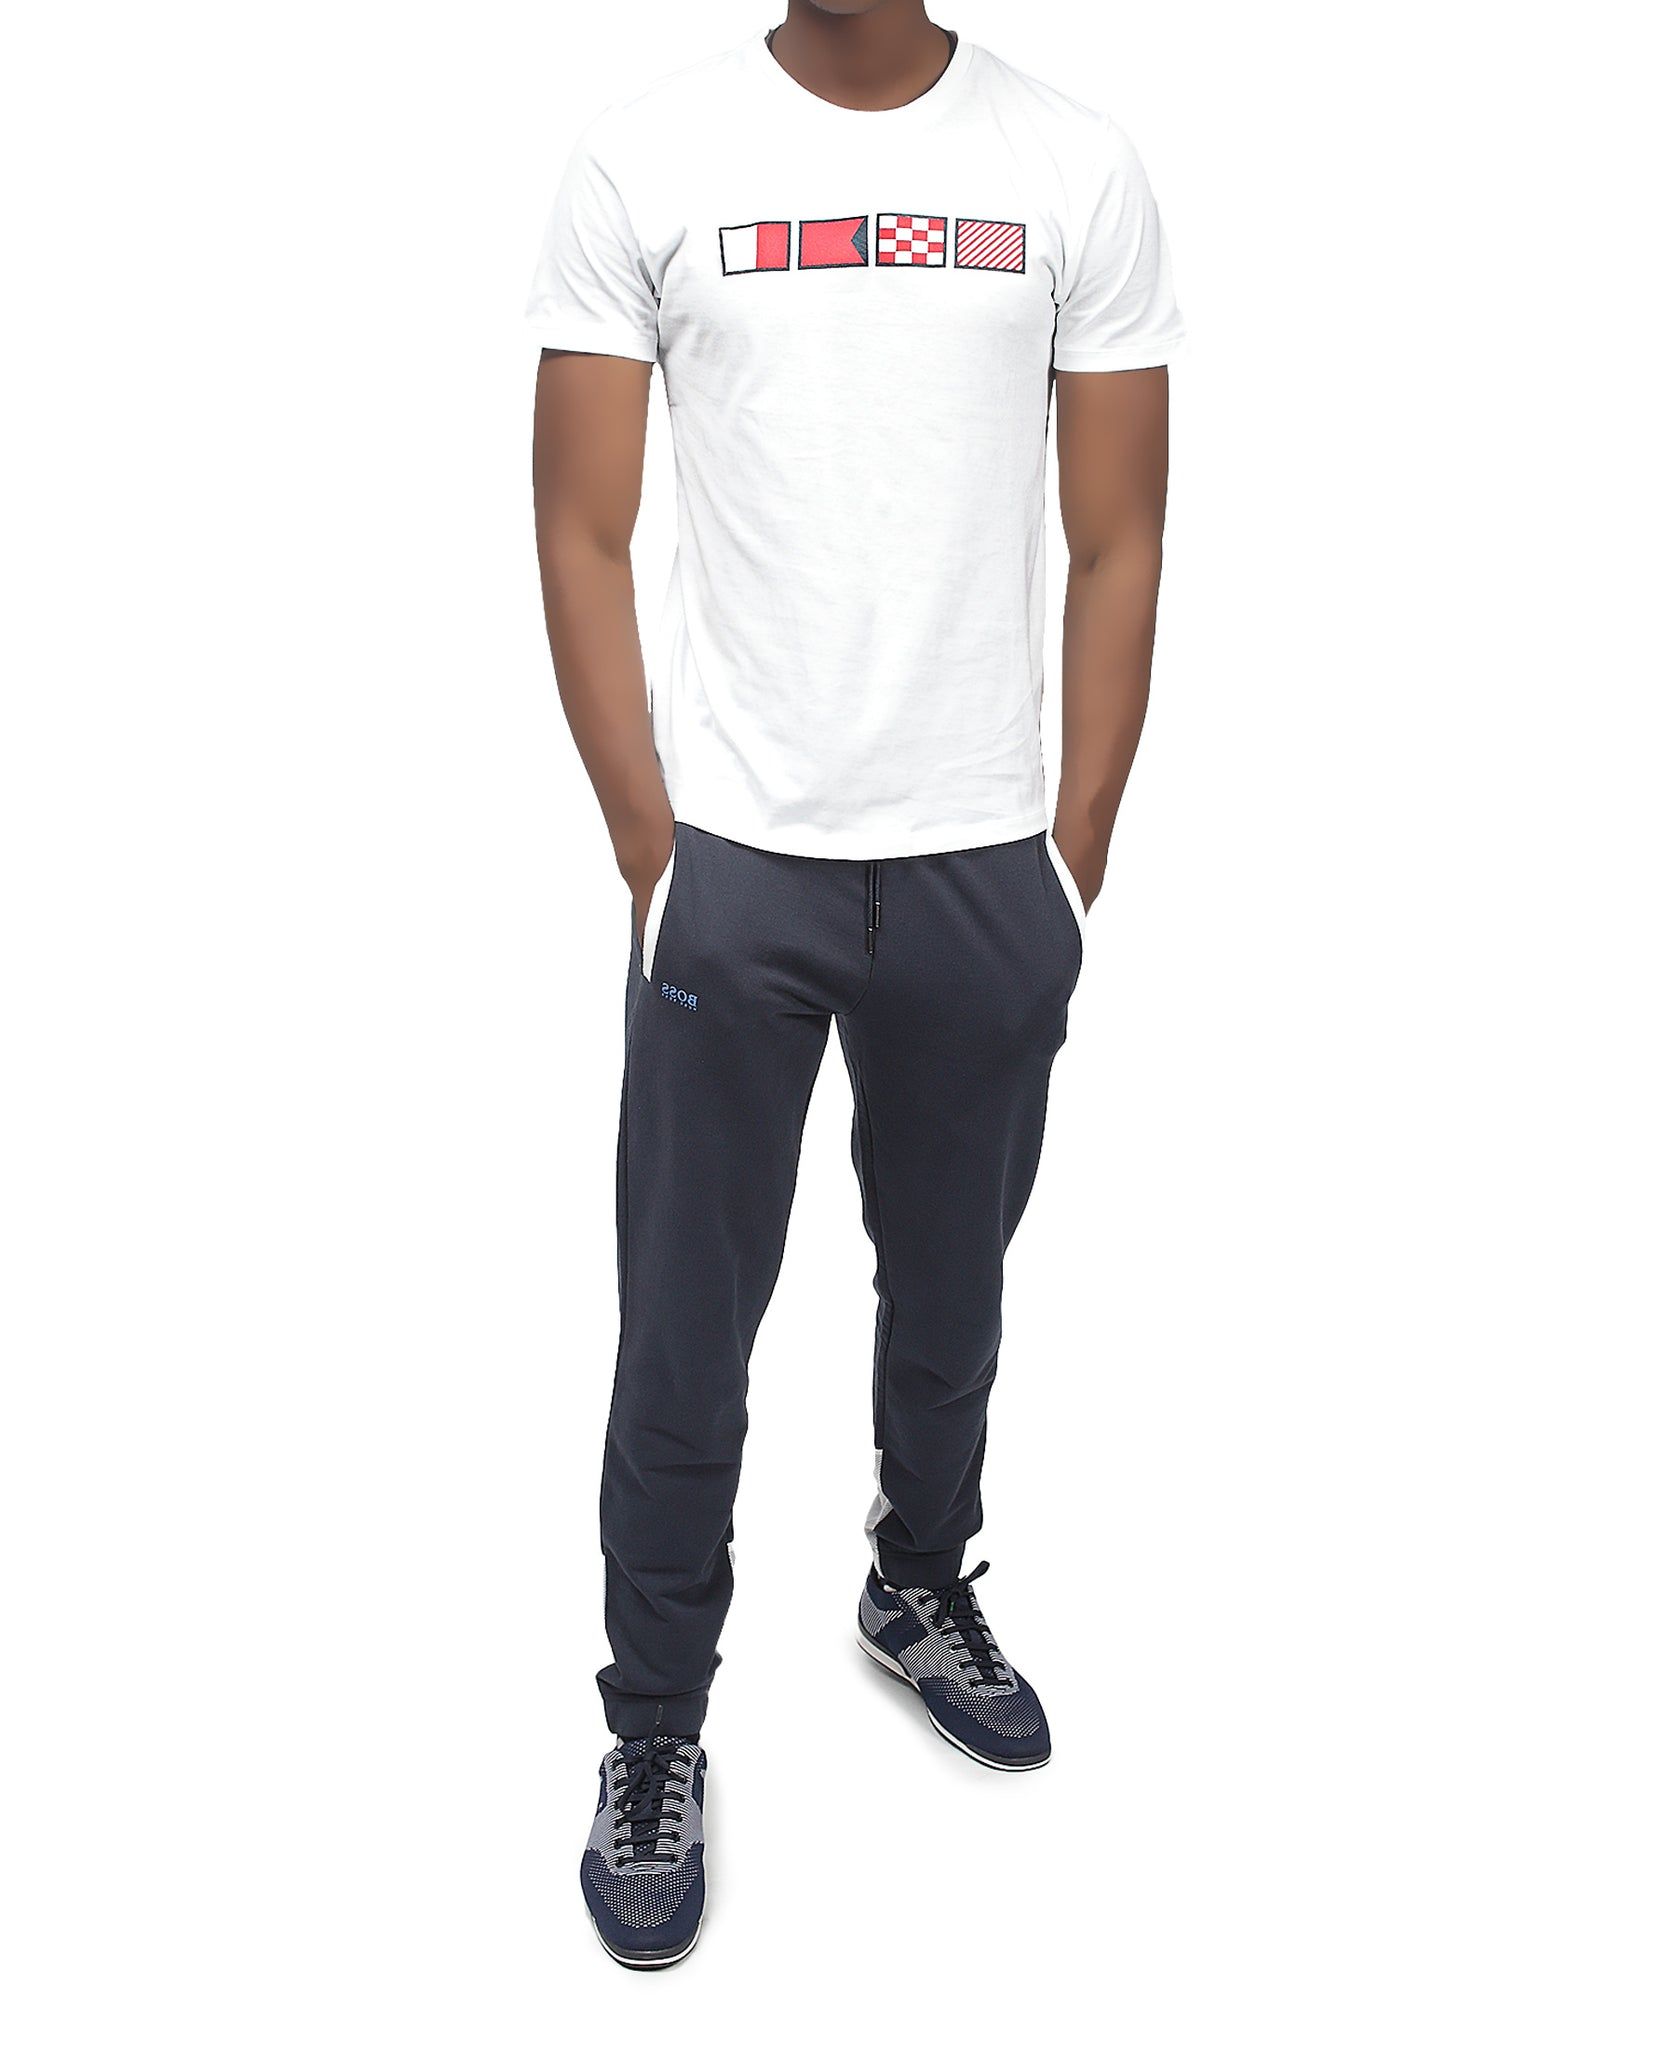 Slim Fit Hugo Boss T-Shirt - White